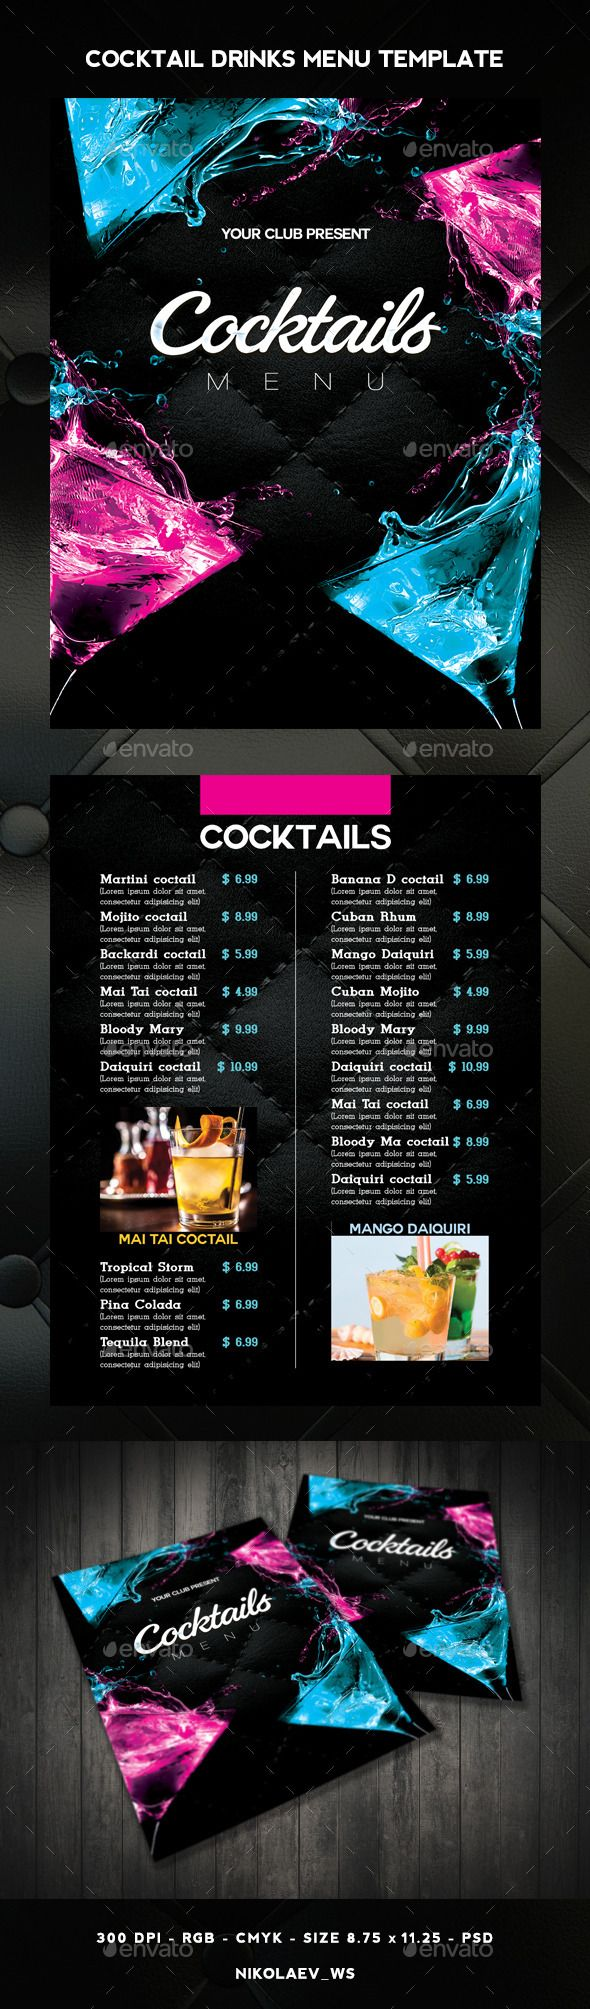 Cocktail Drinks Menu – Drinks Menu Template